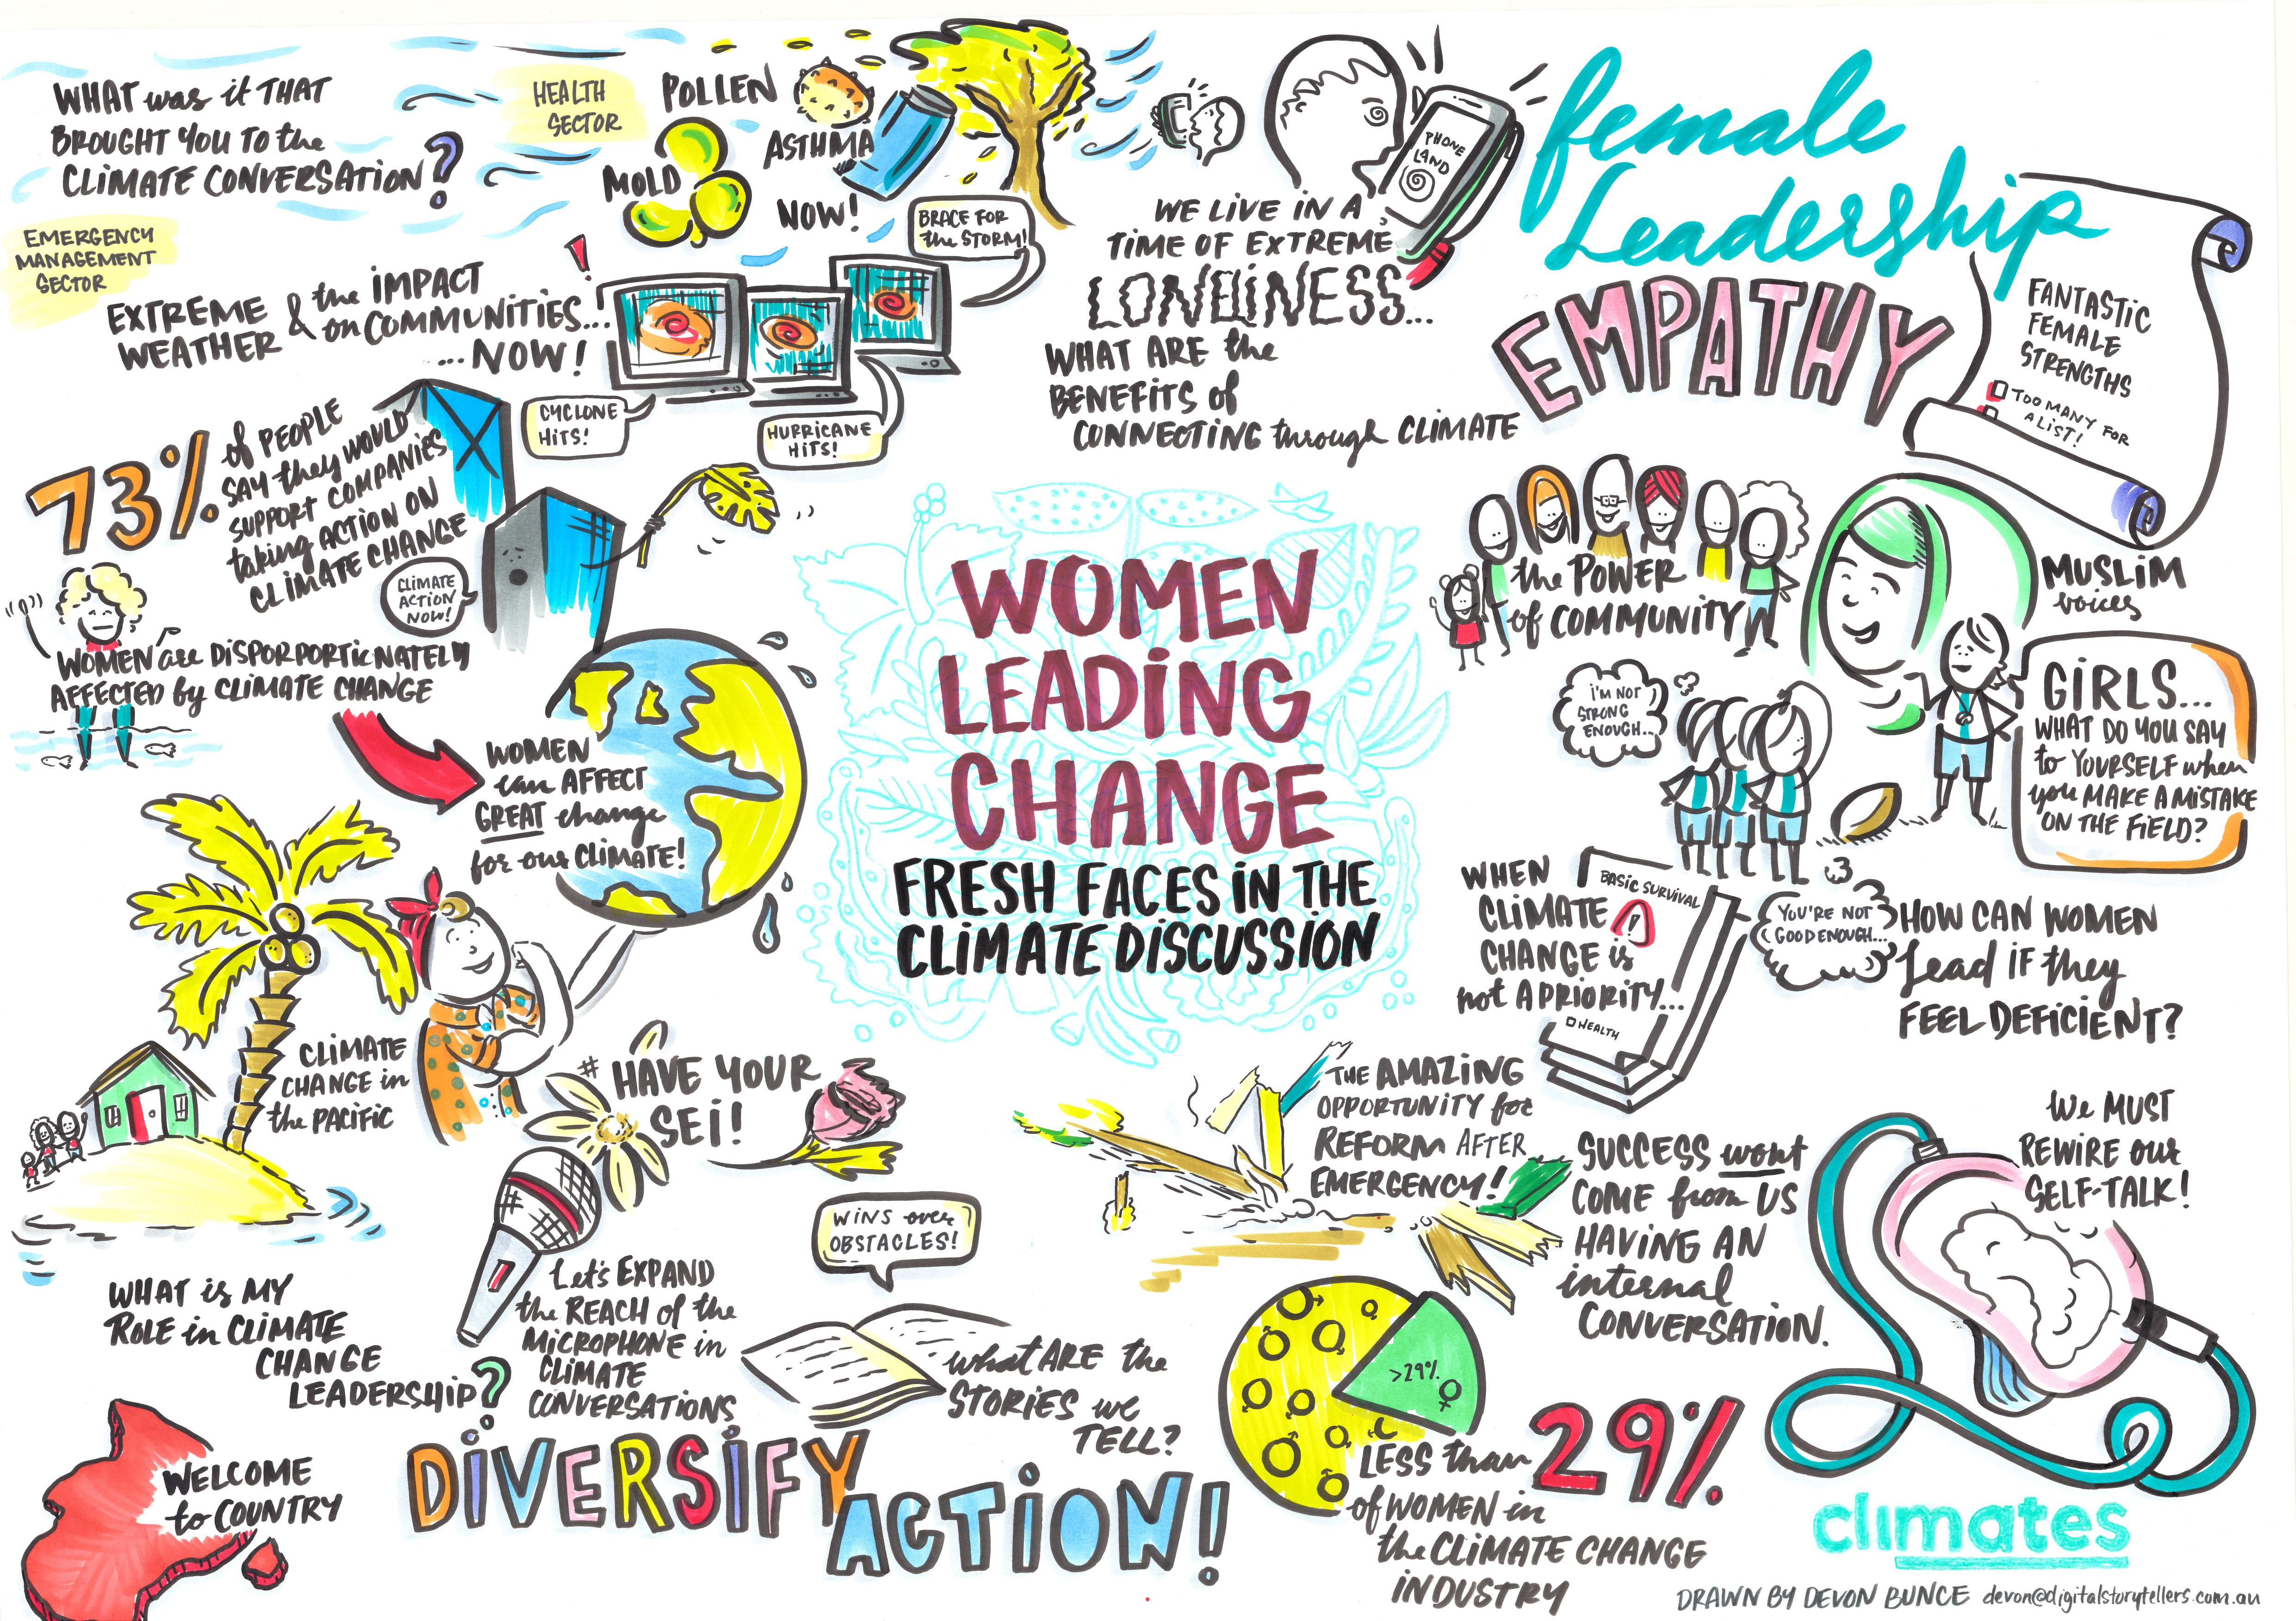 Women leading change: fresh perspectives in the climate discussion